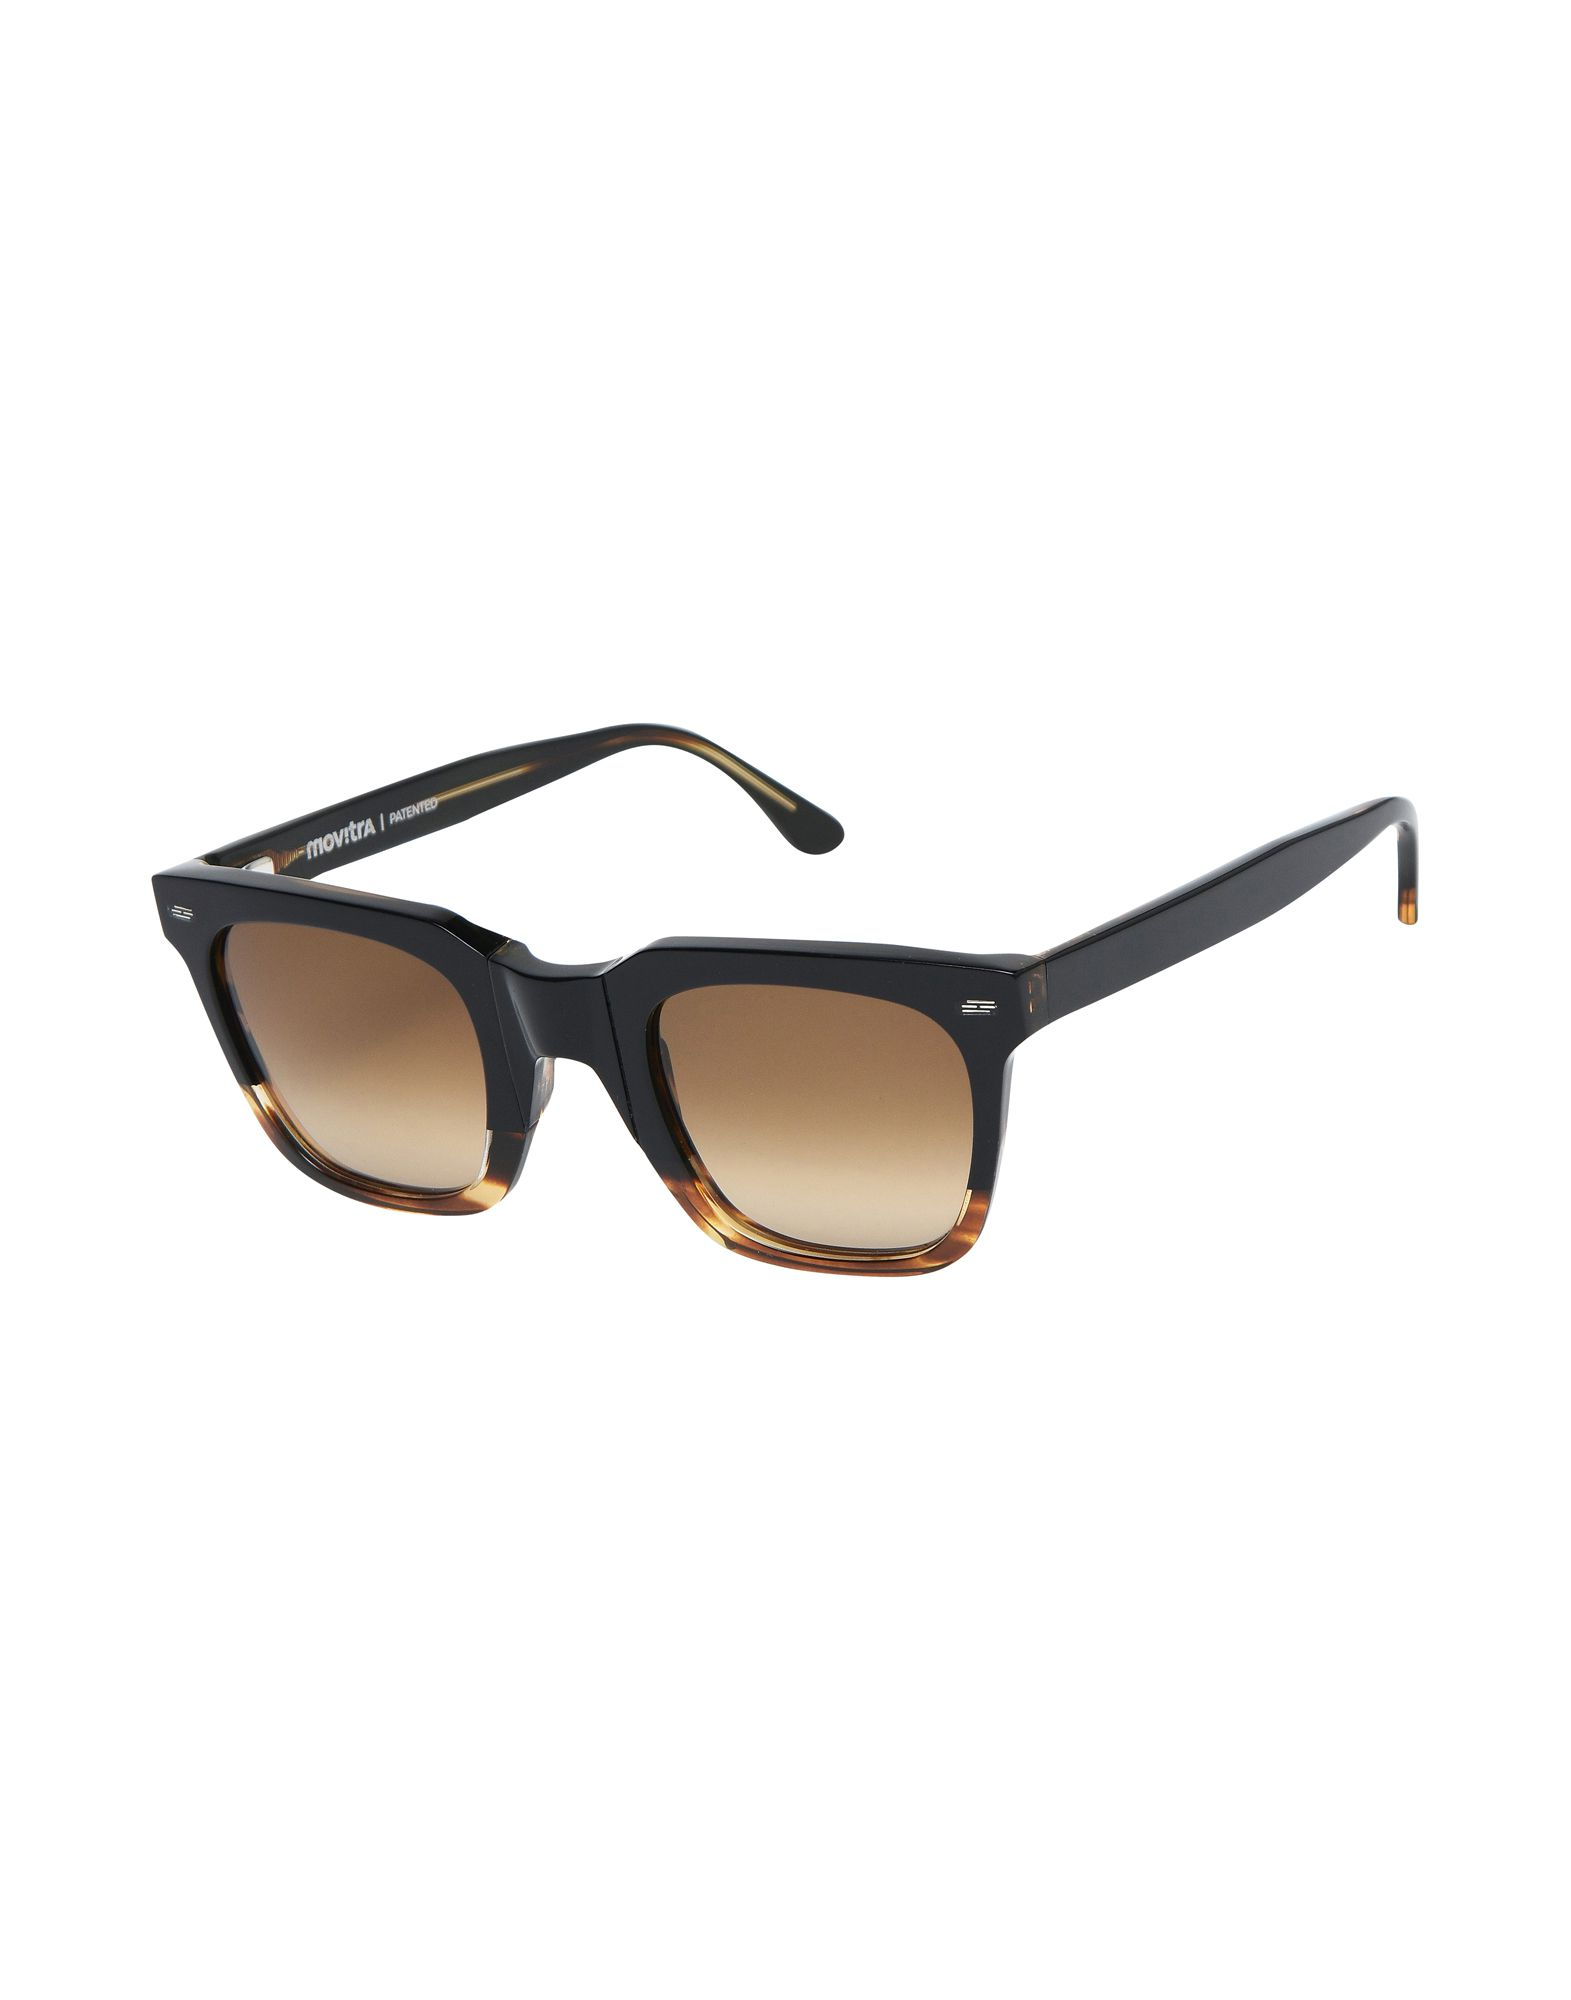 MOVITRA Sunglasses in Brown